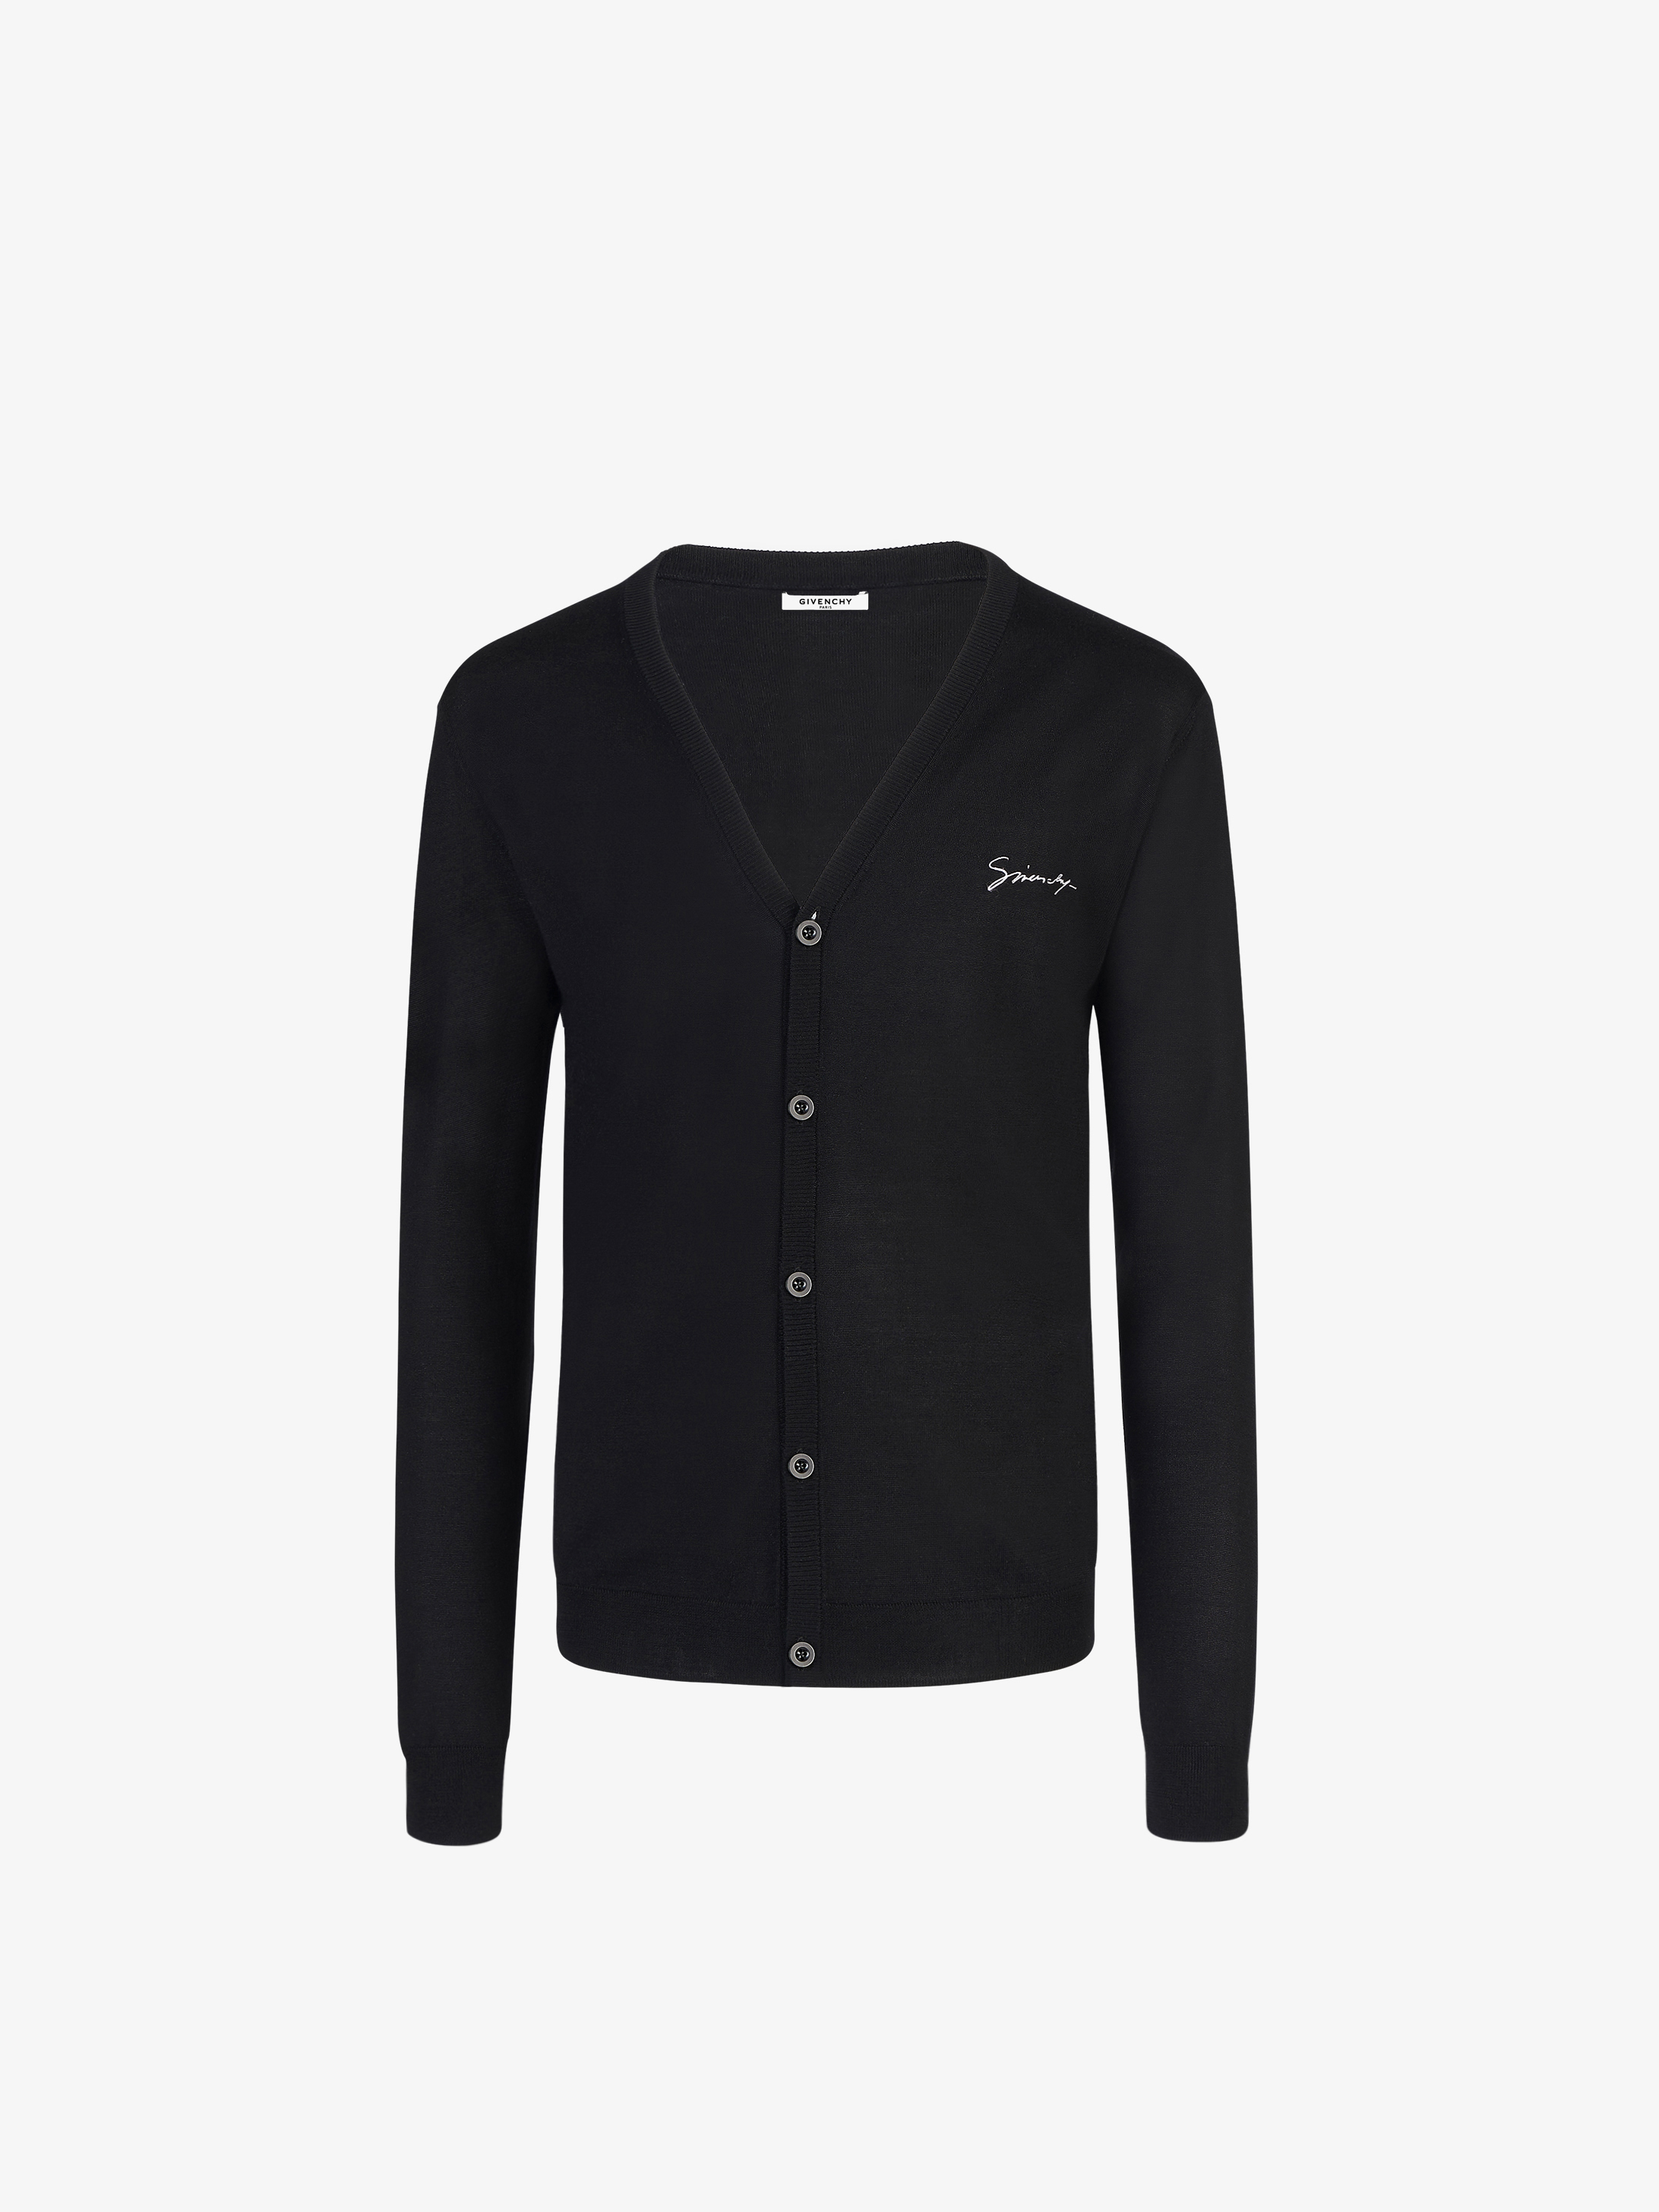 GIVENCHY embroidered cardigan in silk